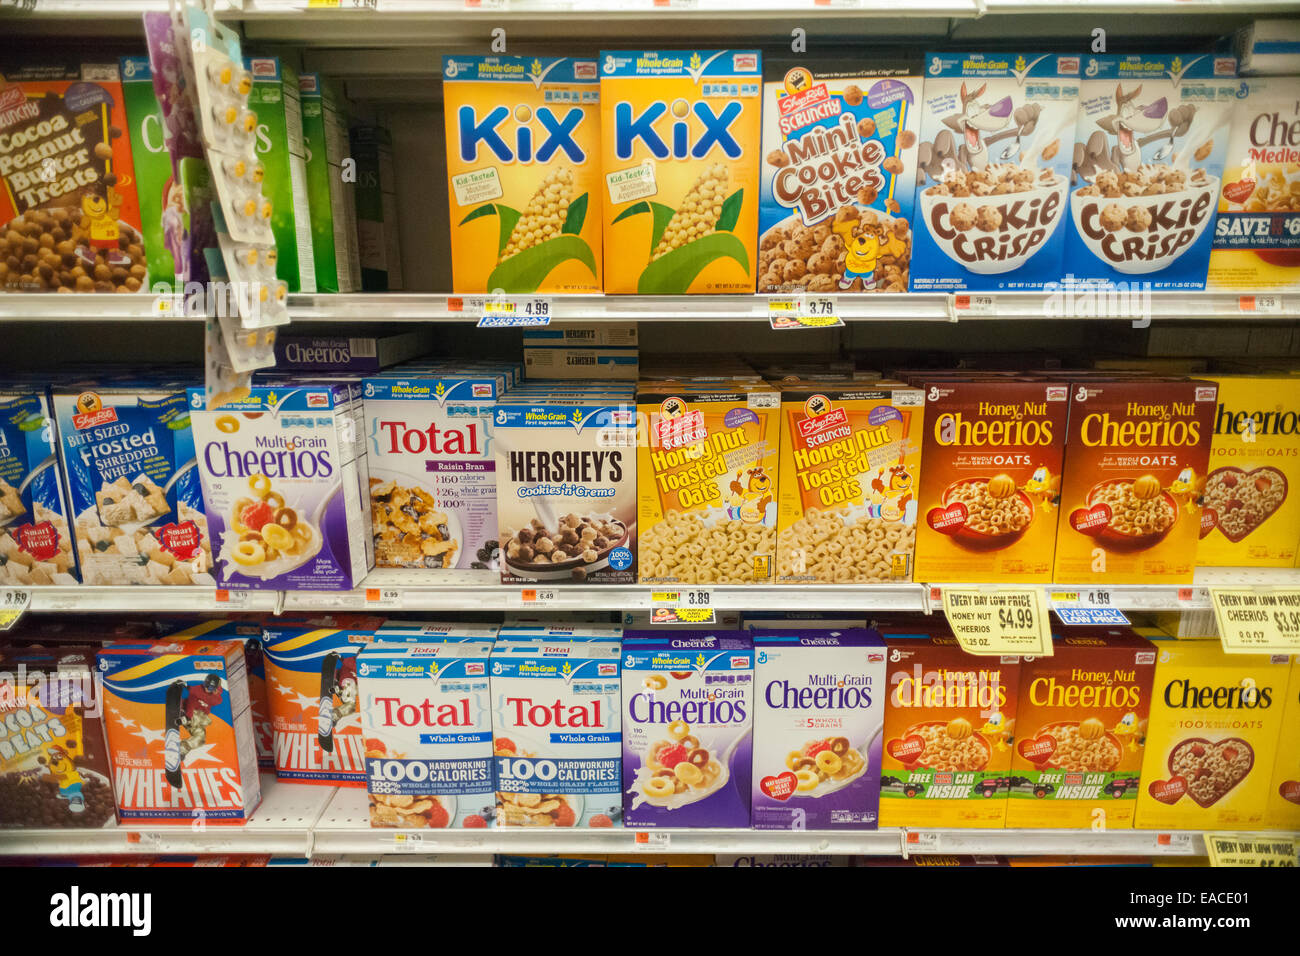 Boxes of General Mills breakfast cereals mixed in with house brand similar on supermarket shelves - Stock Image